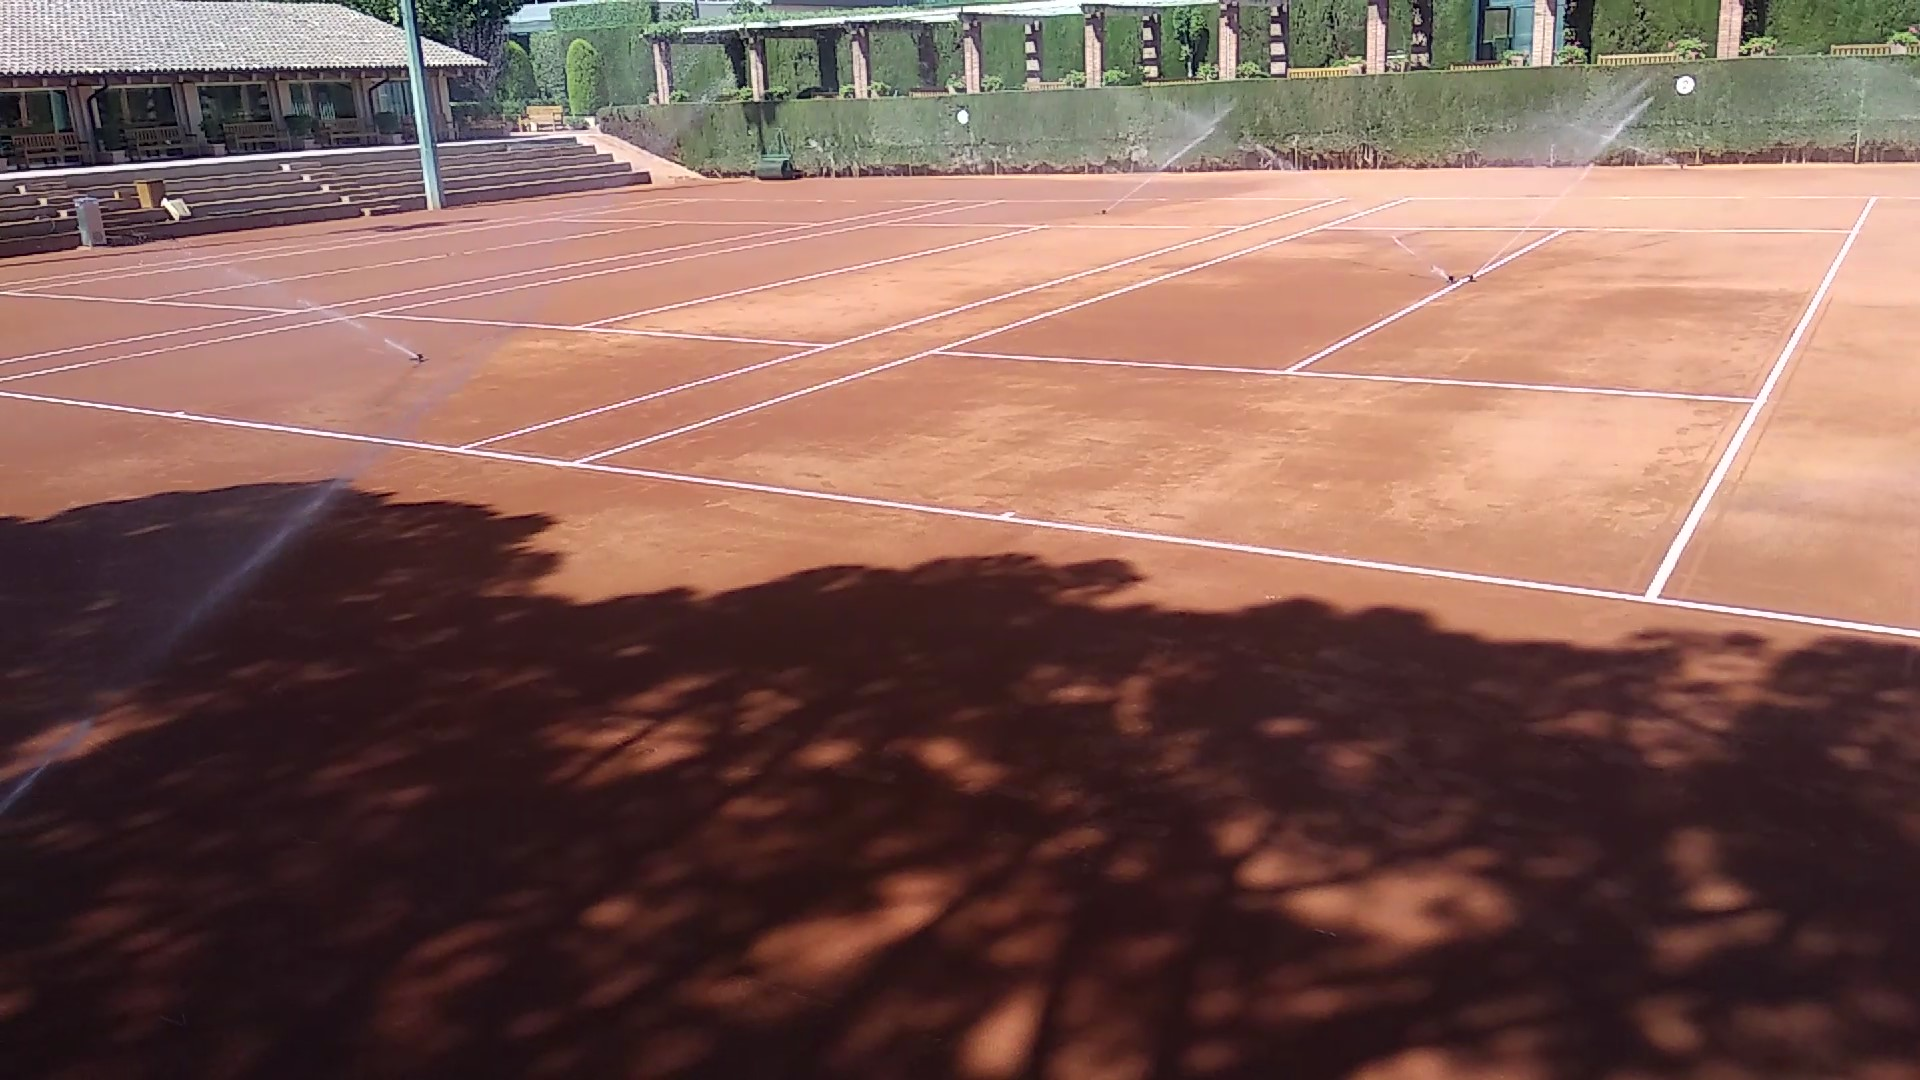 riego-aspersion-pistas-real club tenis barcelona-celabasa